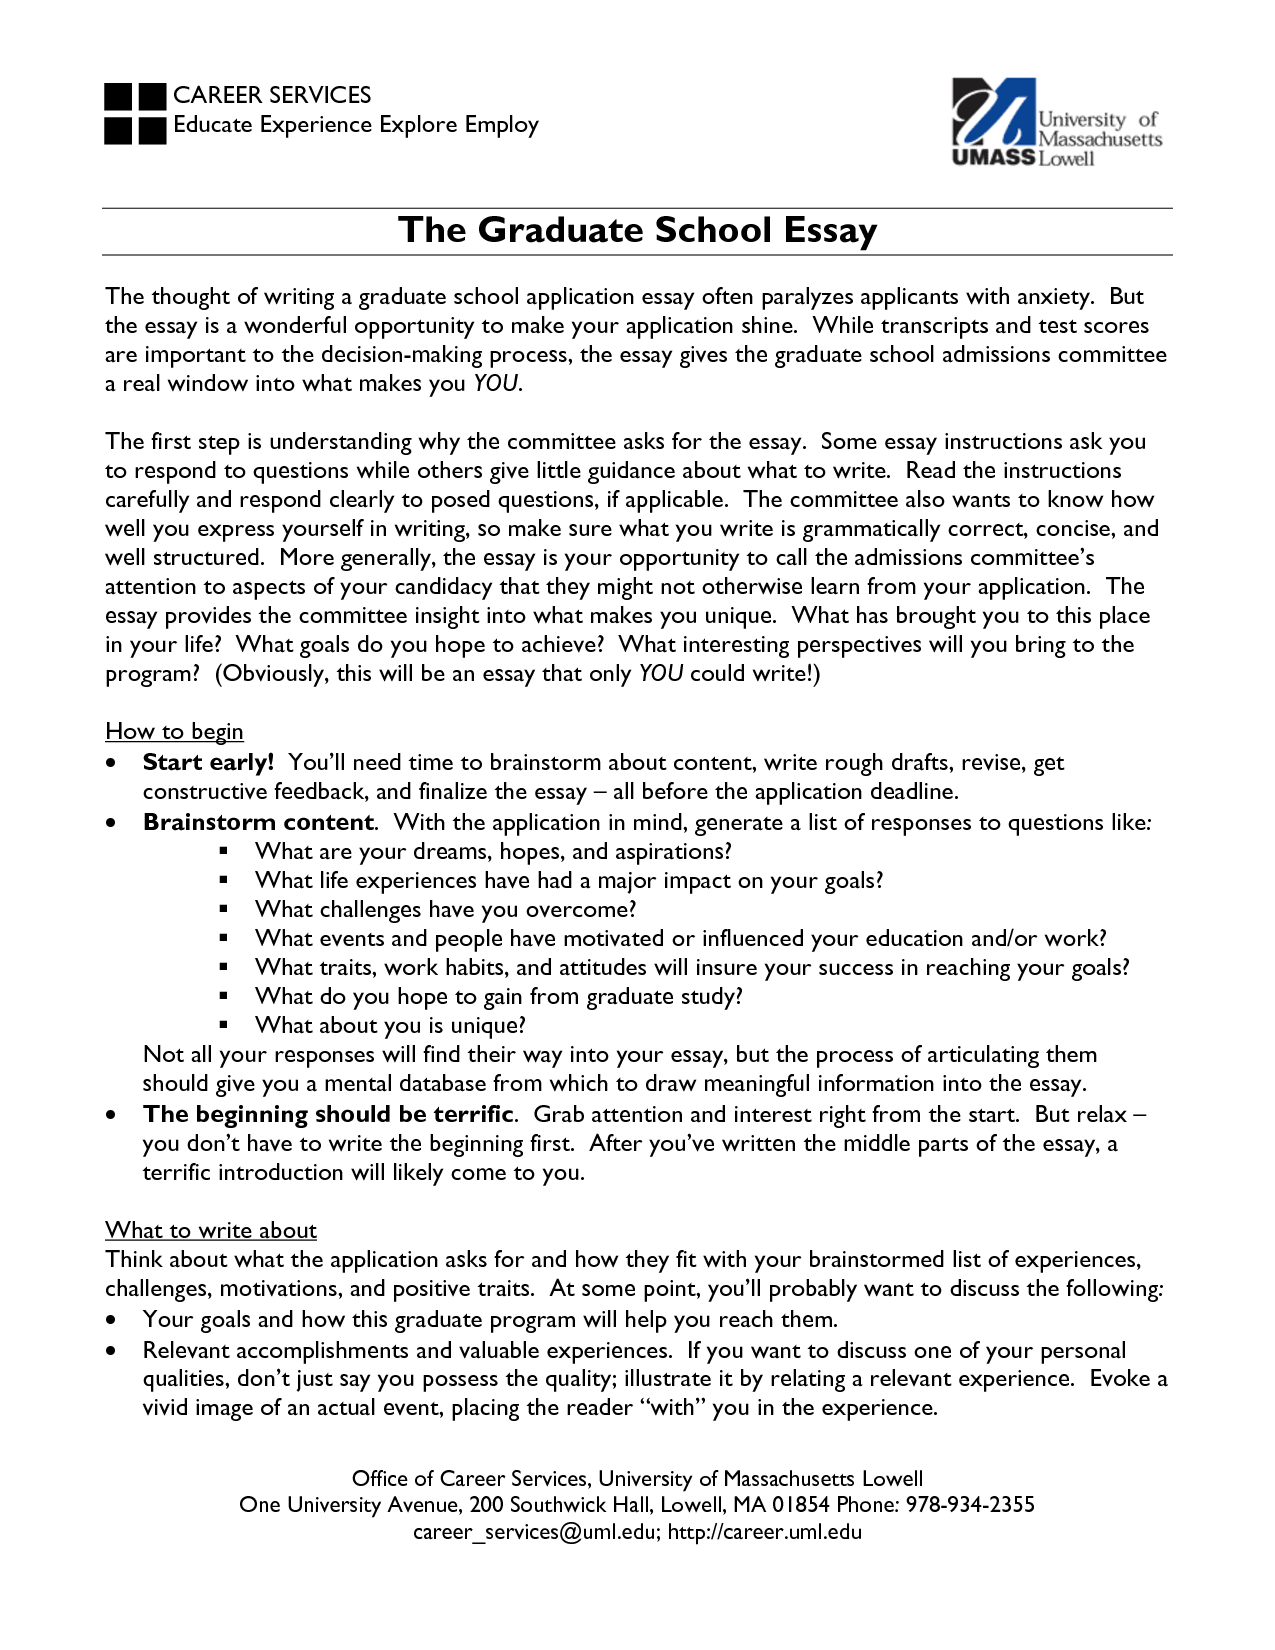 thesis acknowledment informal care essay how to write about best personal essay editing service for university aploon professional college application essay writers quotes frank d